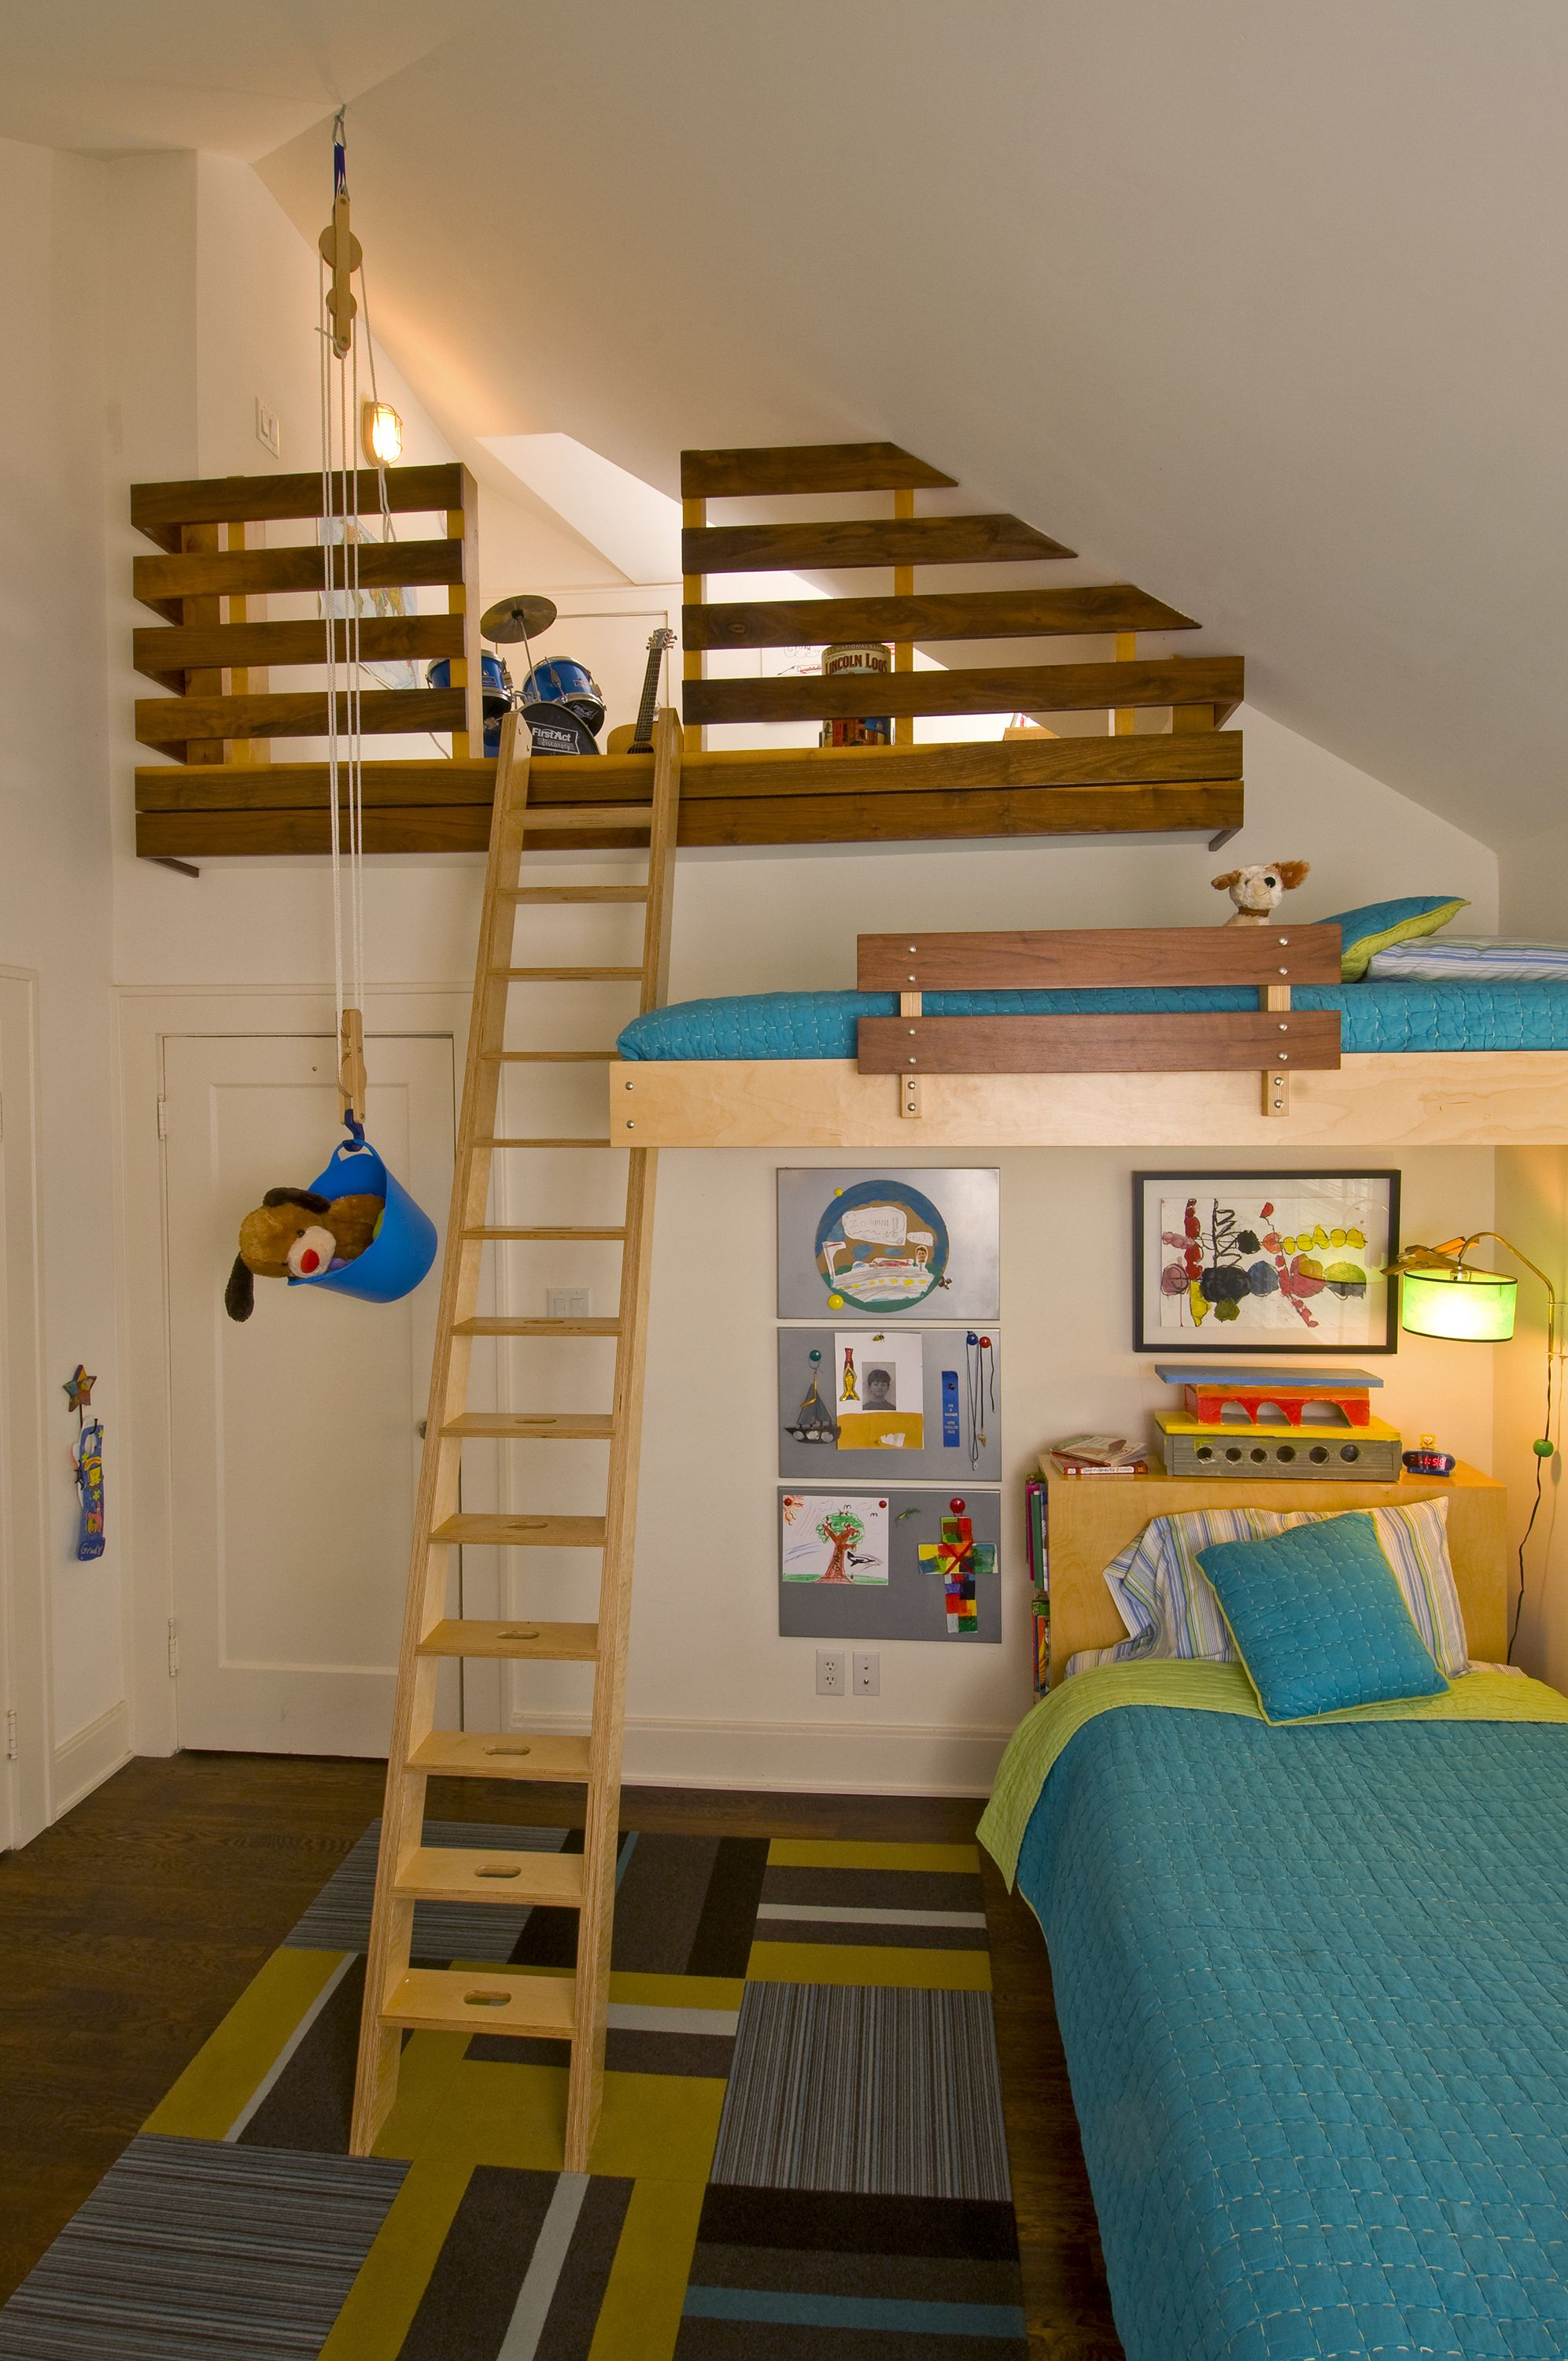 Bunk Bed Designs For Kids Room: Awesome Kids Room-would Be Cool With A Slide Also!